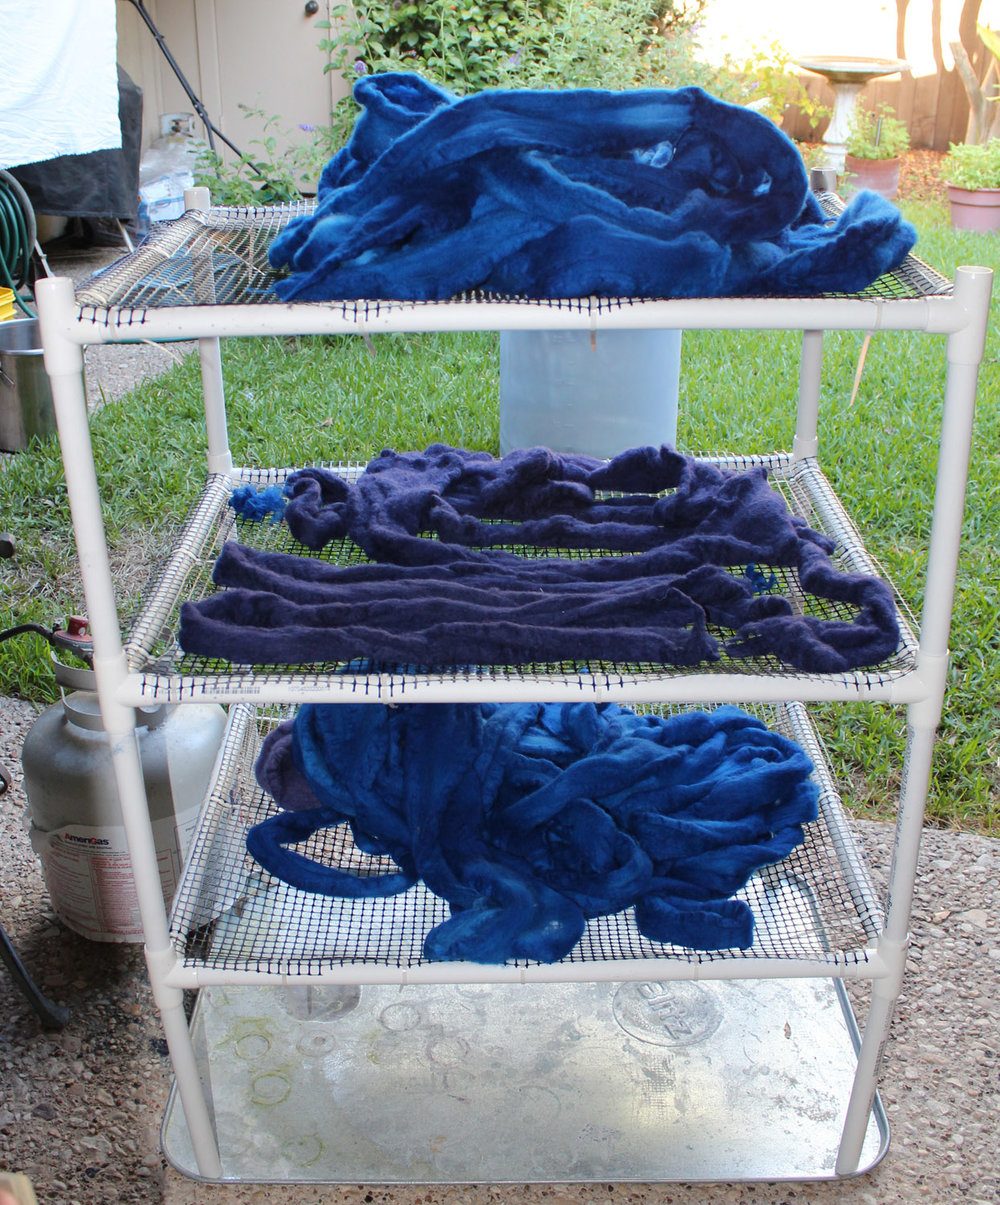 Three levels of wet wool.